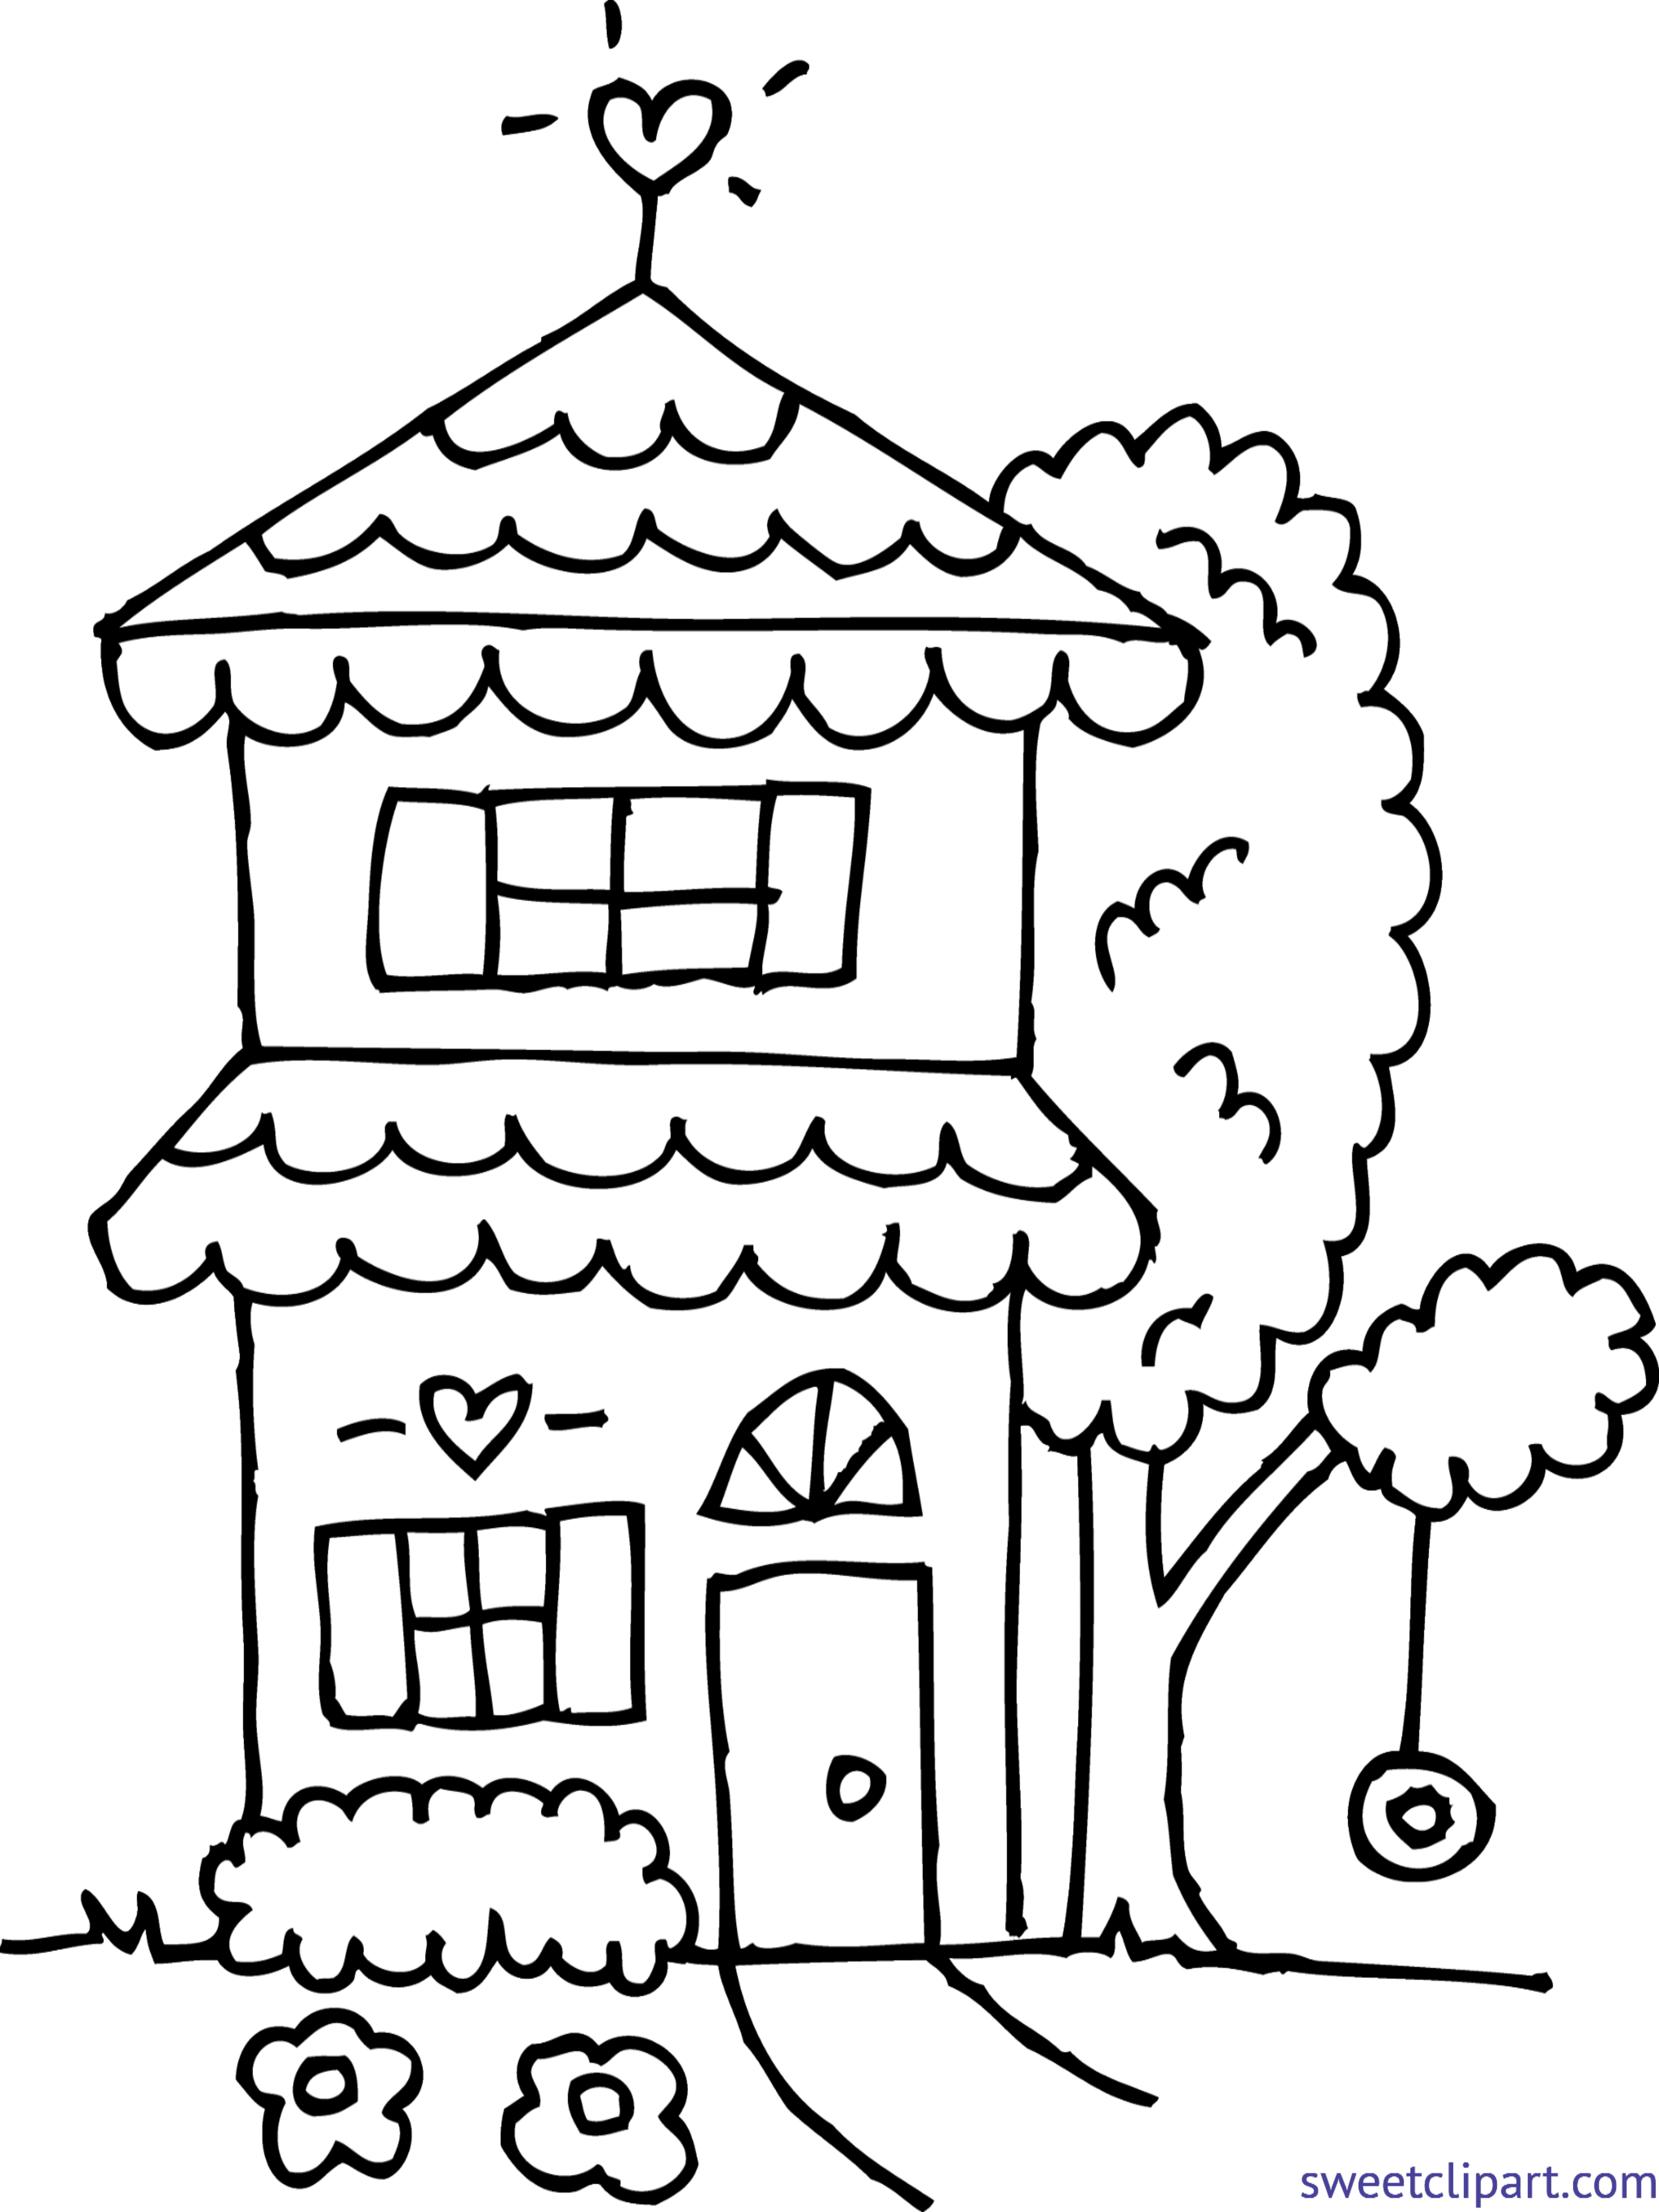 Cute house coloring clip. Yogurt clipart colouring page